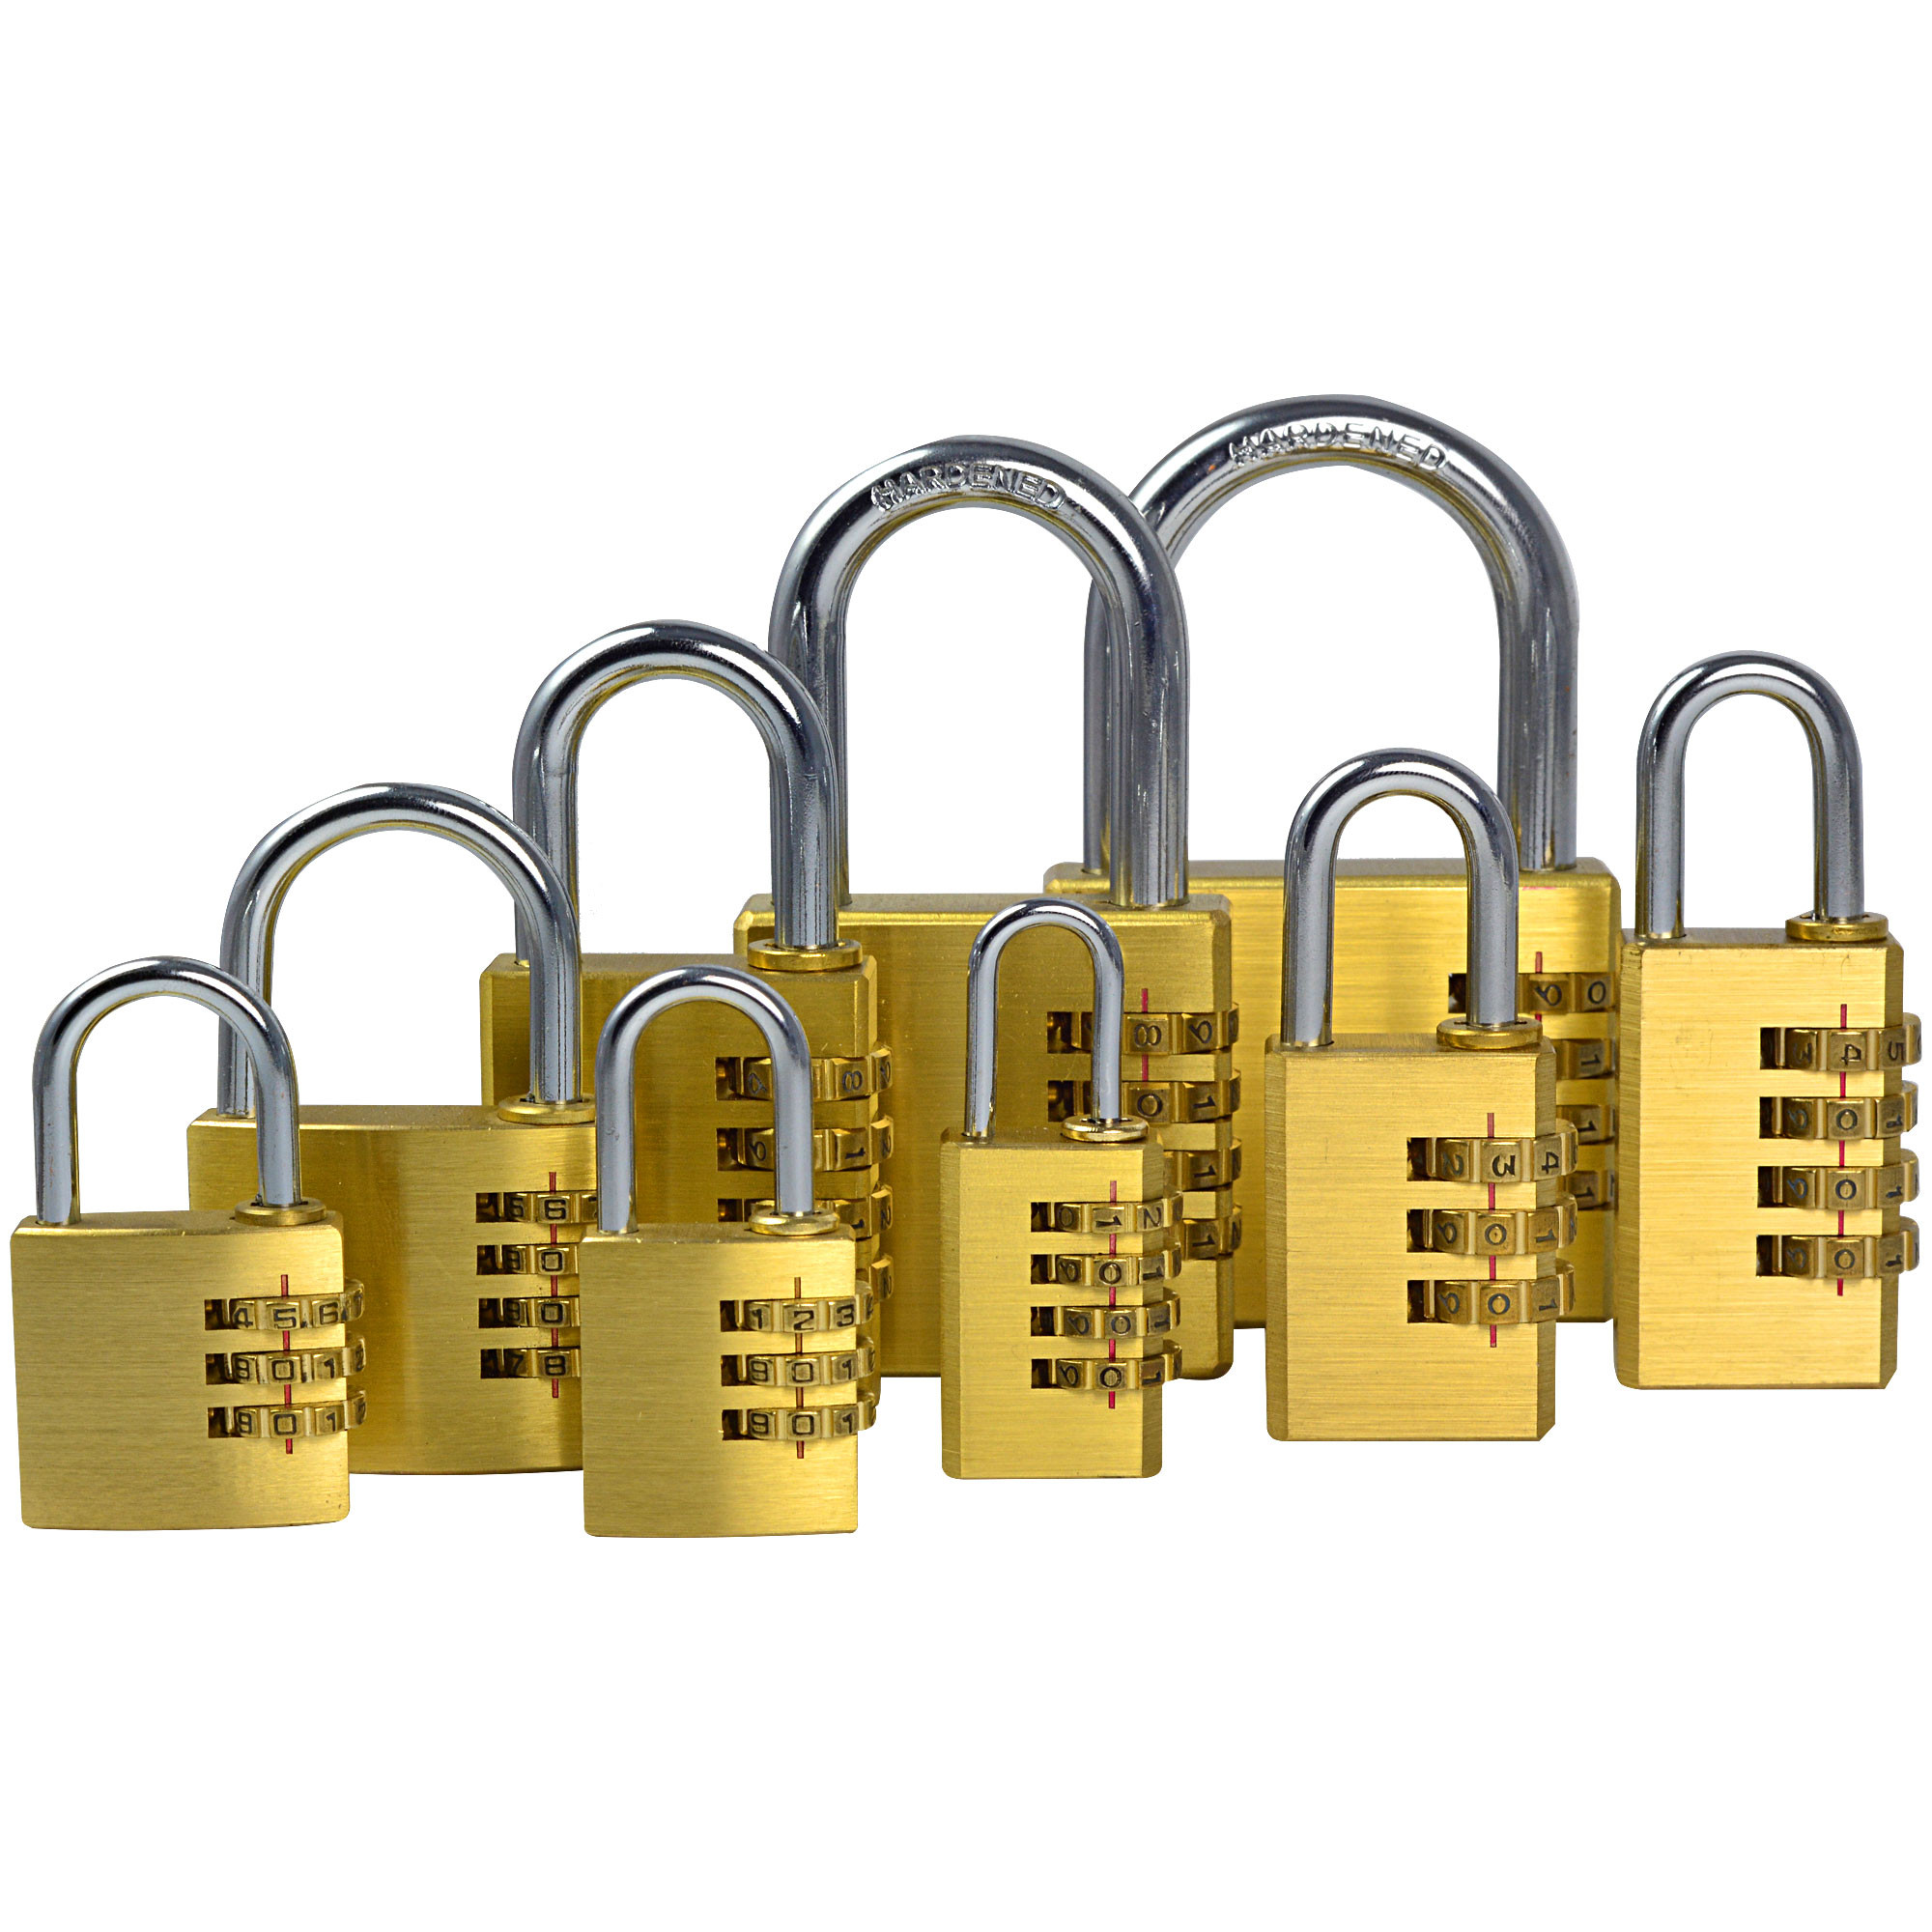 Travel Time Combination Lock 545 Silver Daftar Update Harga Source · MENGS One Set Of 9 Pieces Full Brass Password Code Lock Combination Padlock Resettable ...